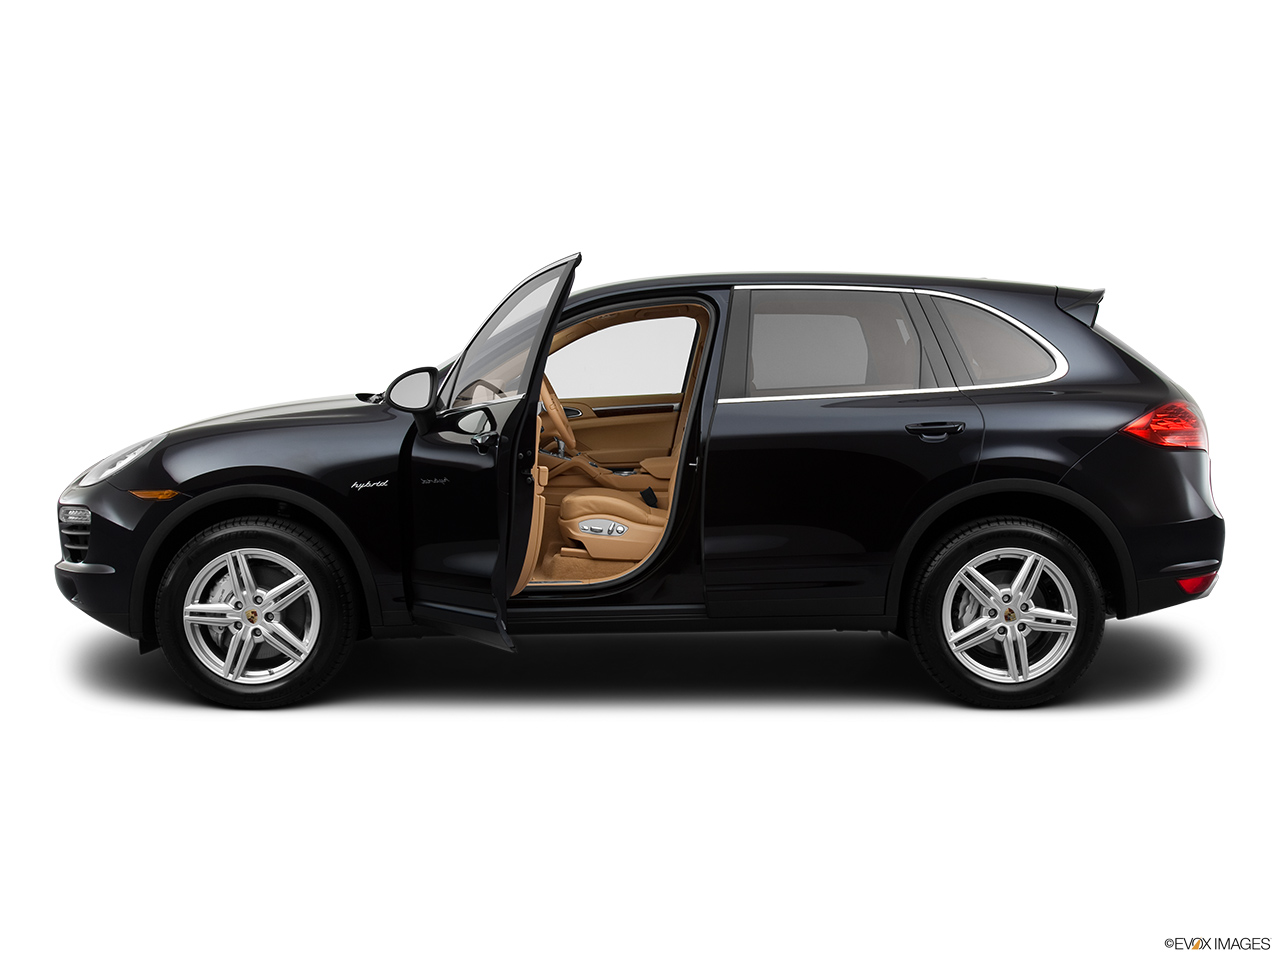 2012 Porsche Cayenne Hybrid Hybrid S Driver's side profile with drivers side door open.